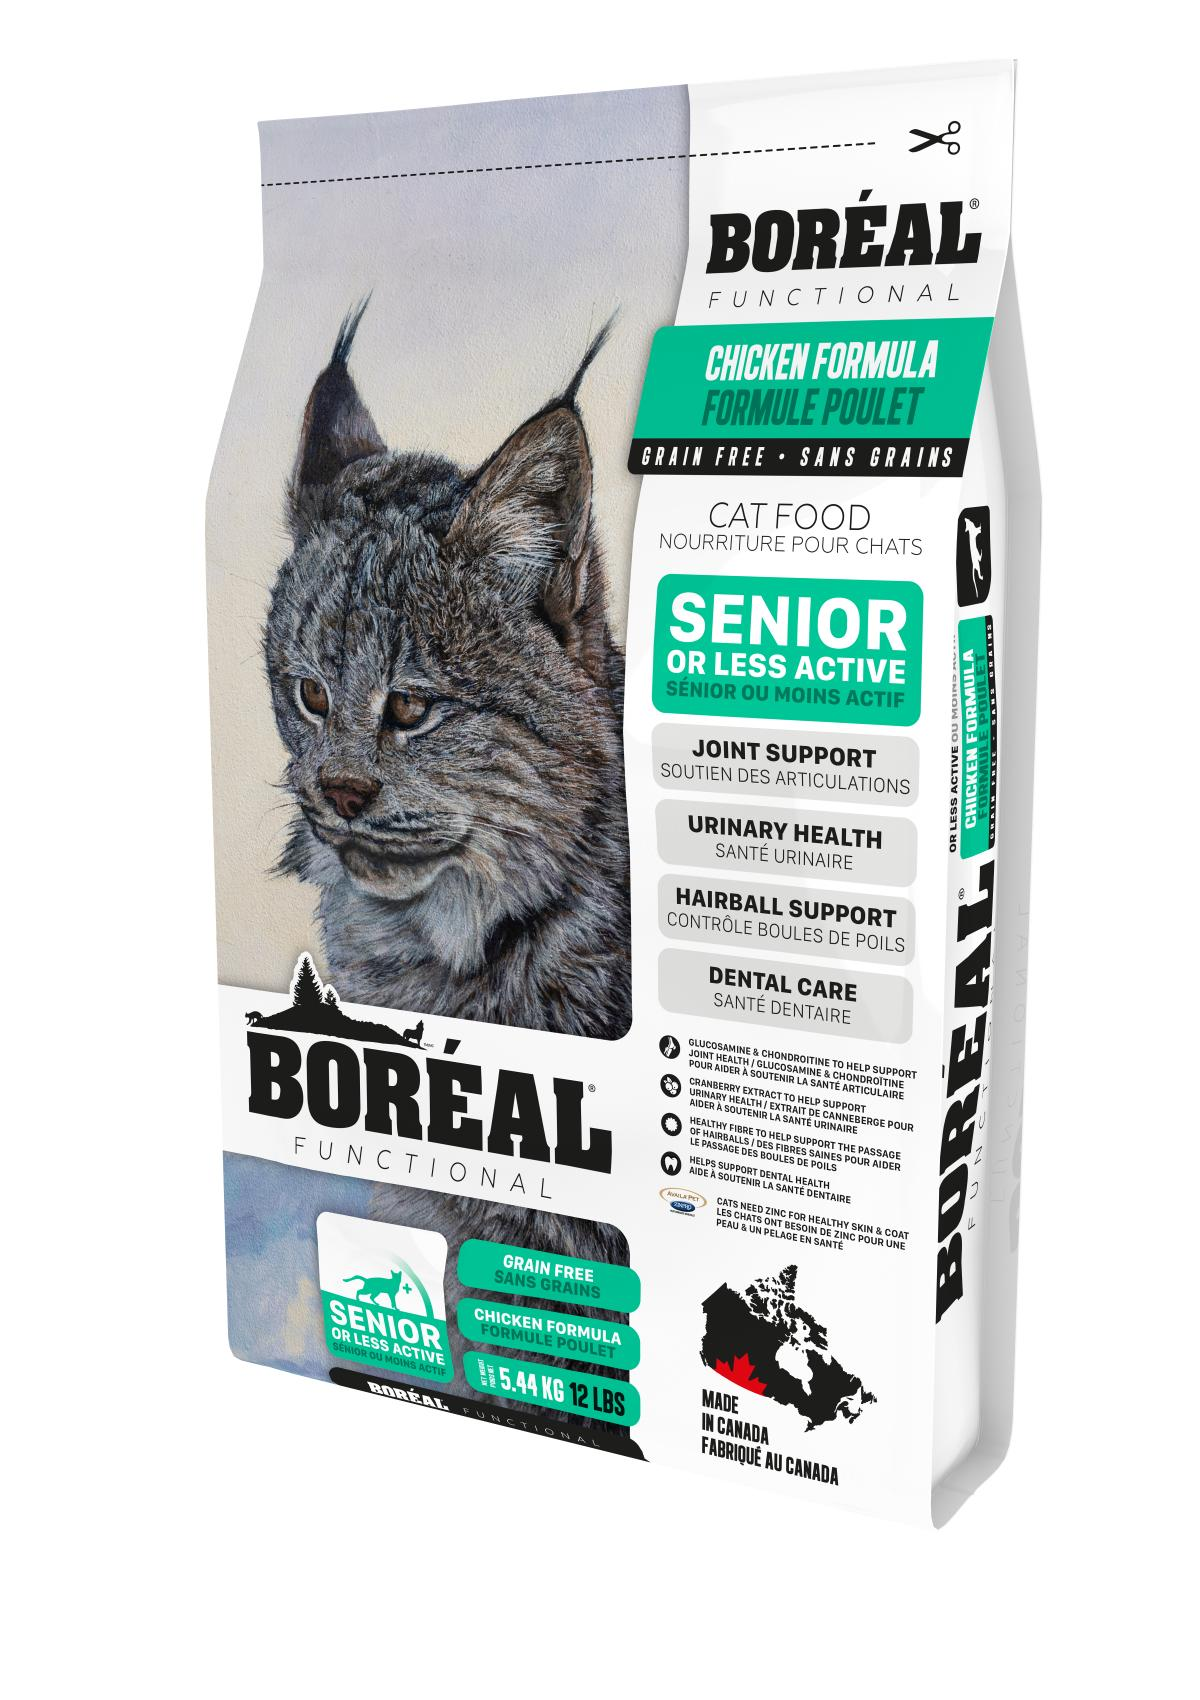 Boreal Functional, Senior and Less Active, All Breeds, Chicken Formula Dry Cat Food, 5.44kg